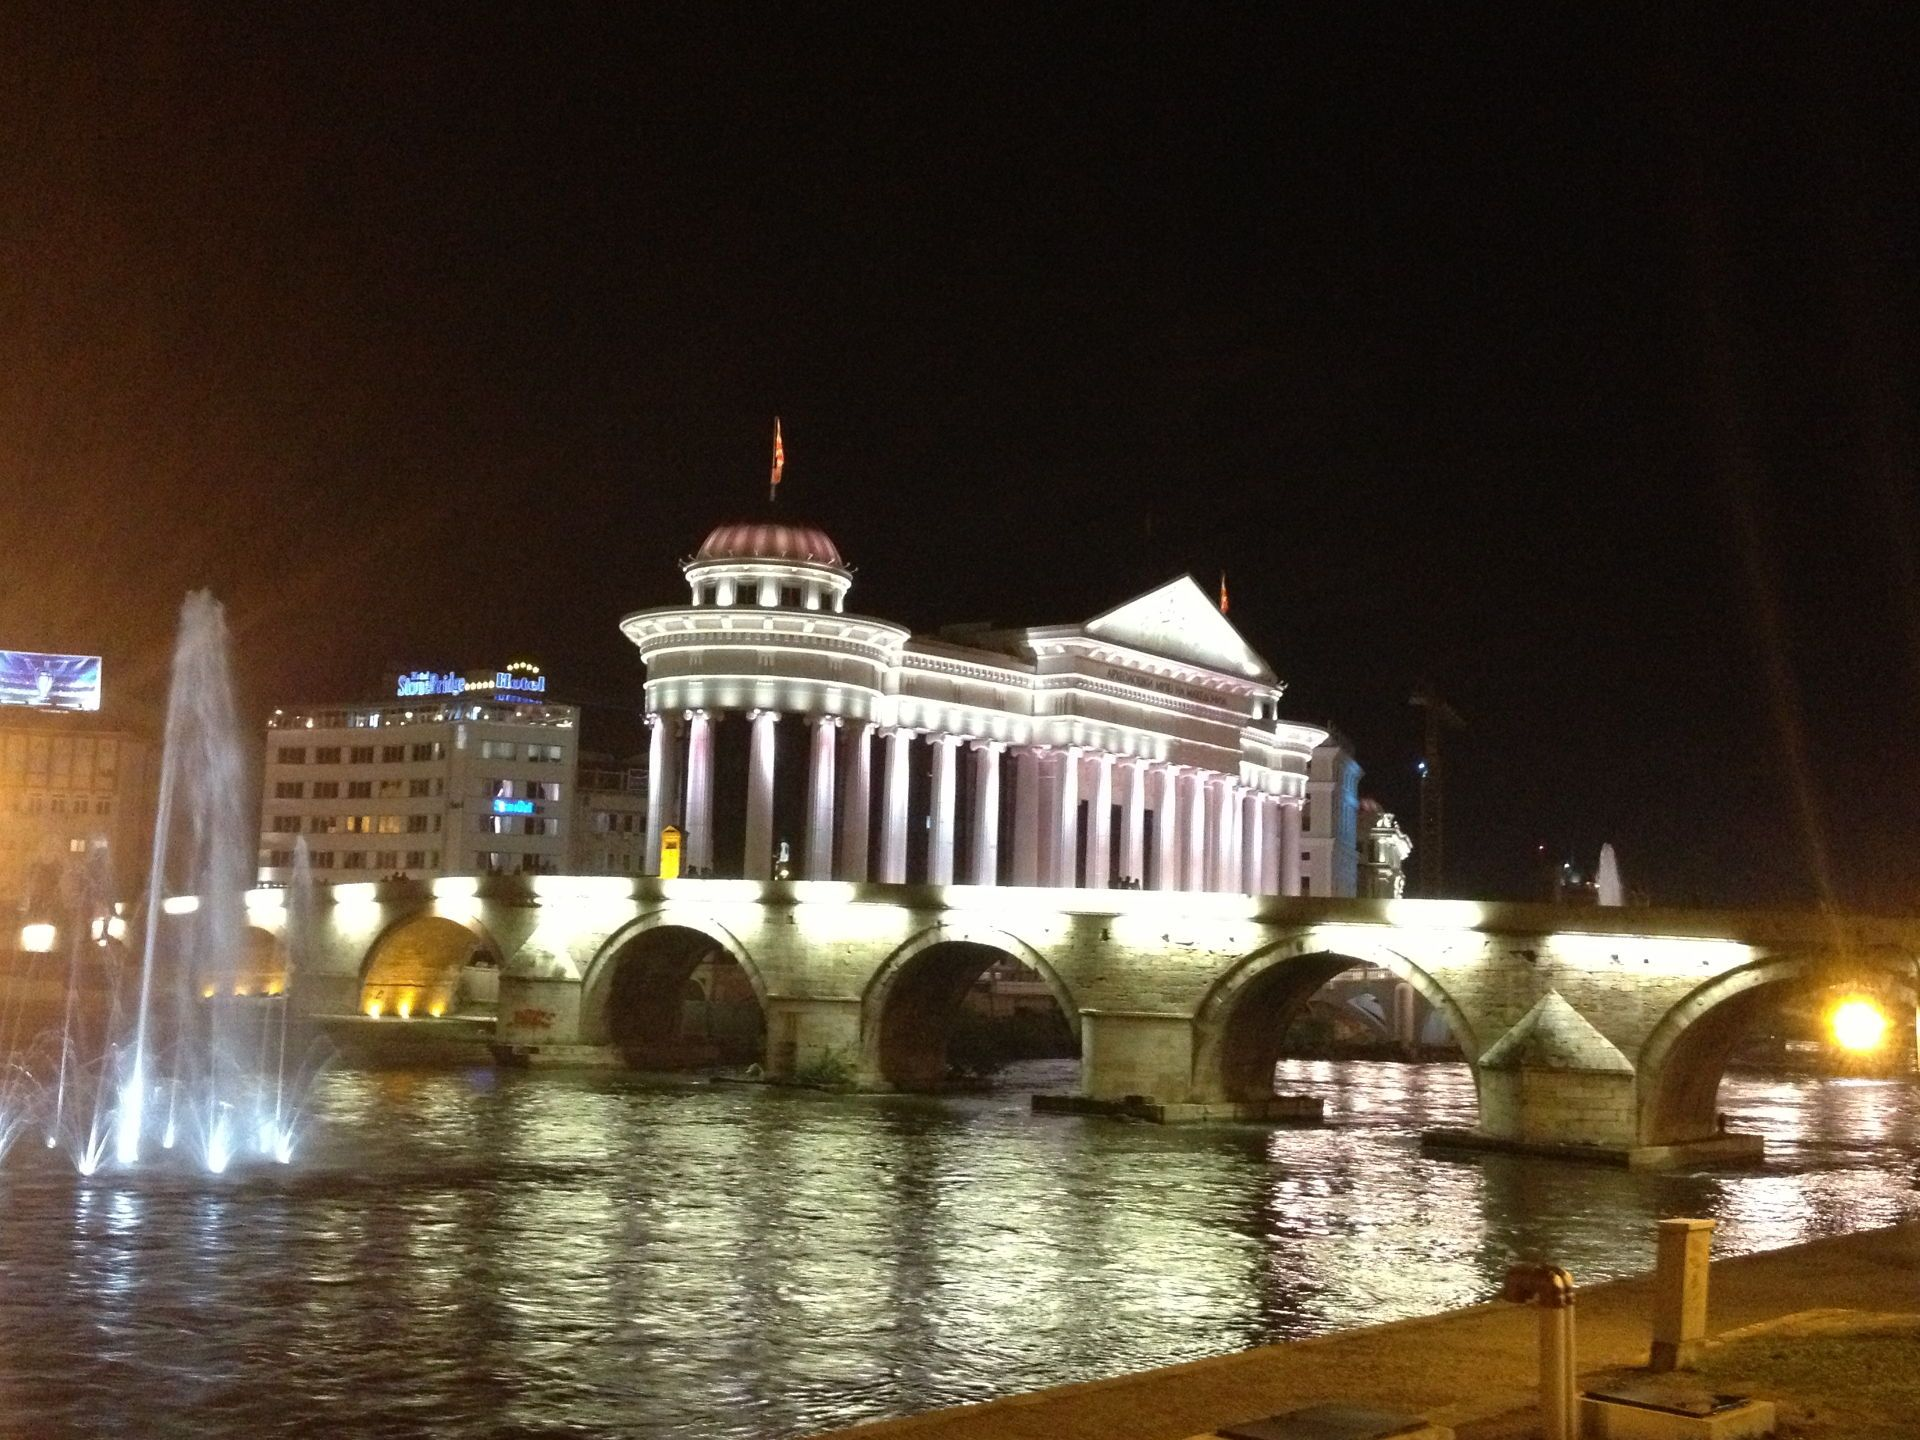 The Stone Bridge at night in Skopje